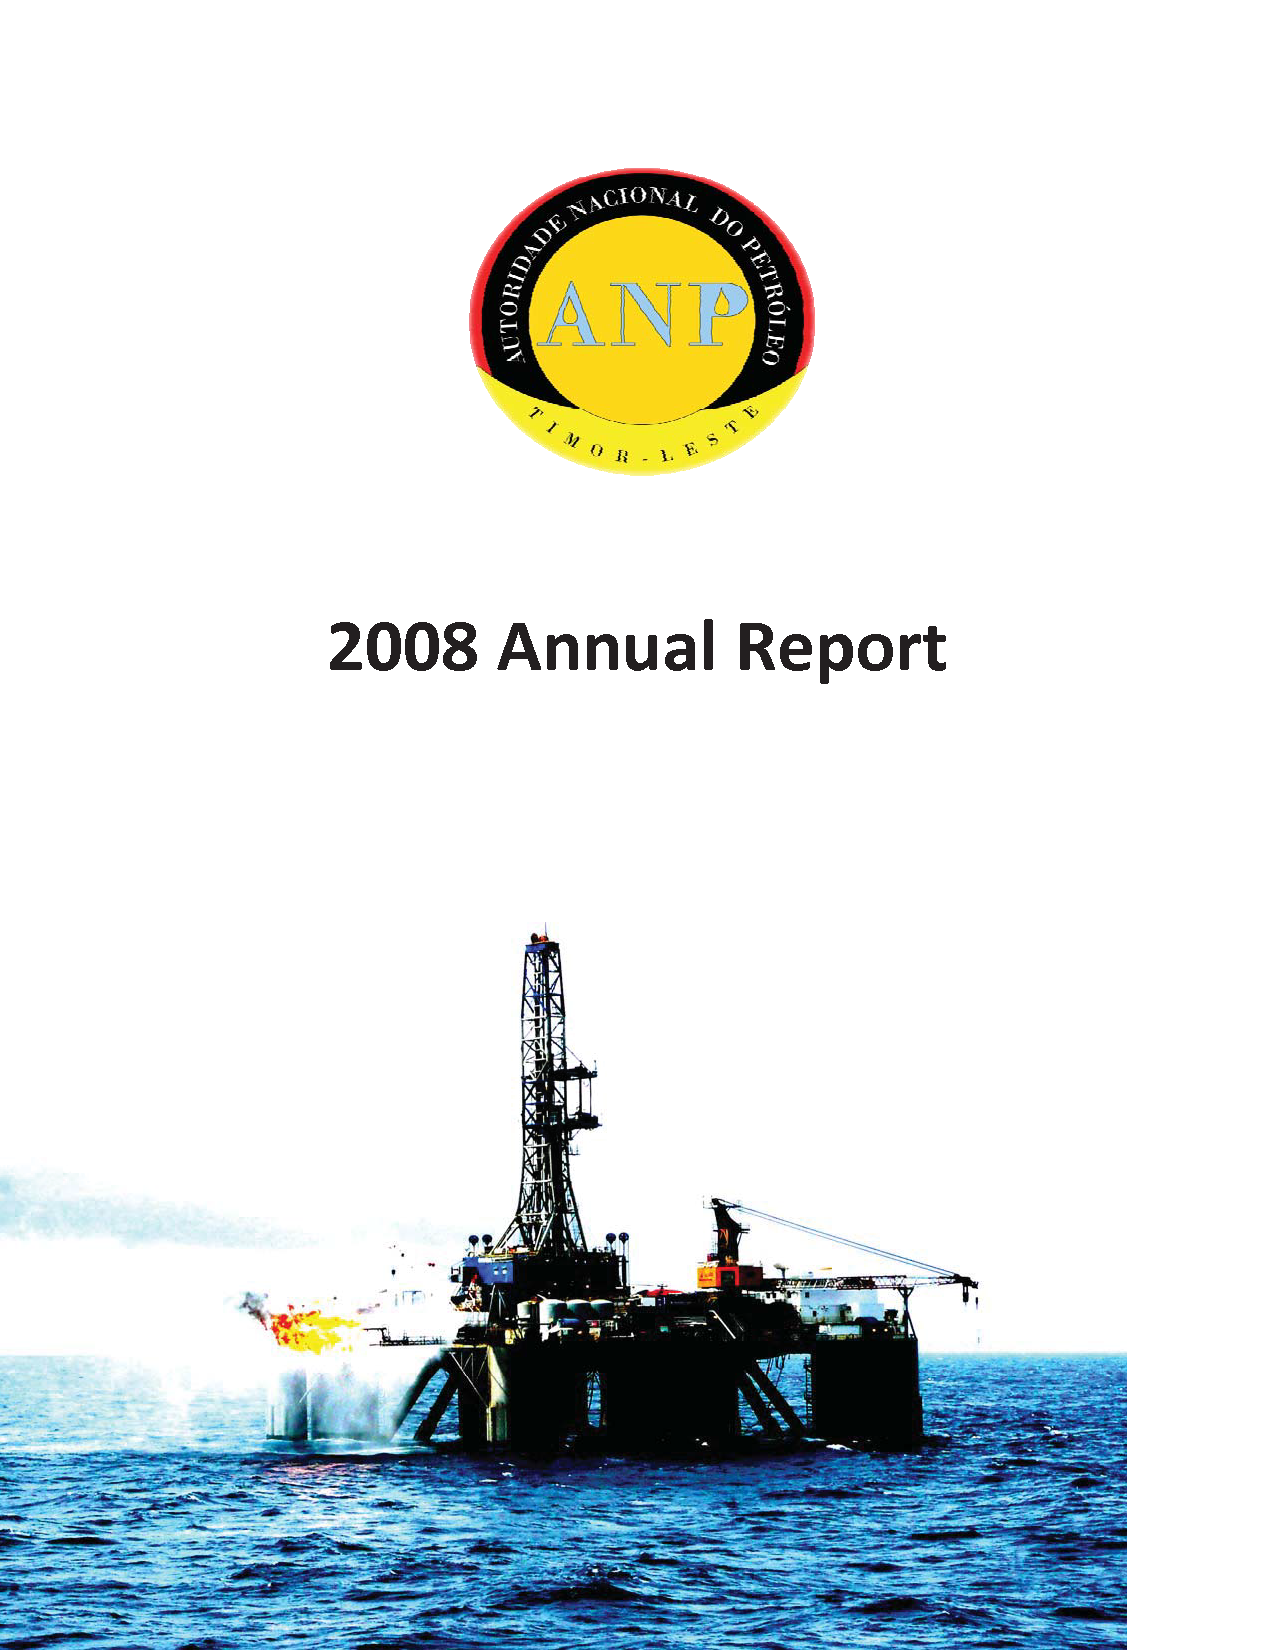 ANPM Annual Report 2008